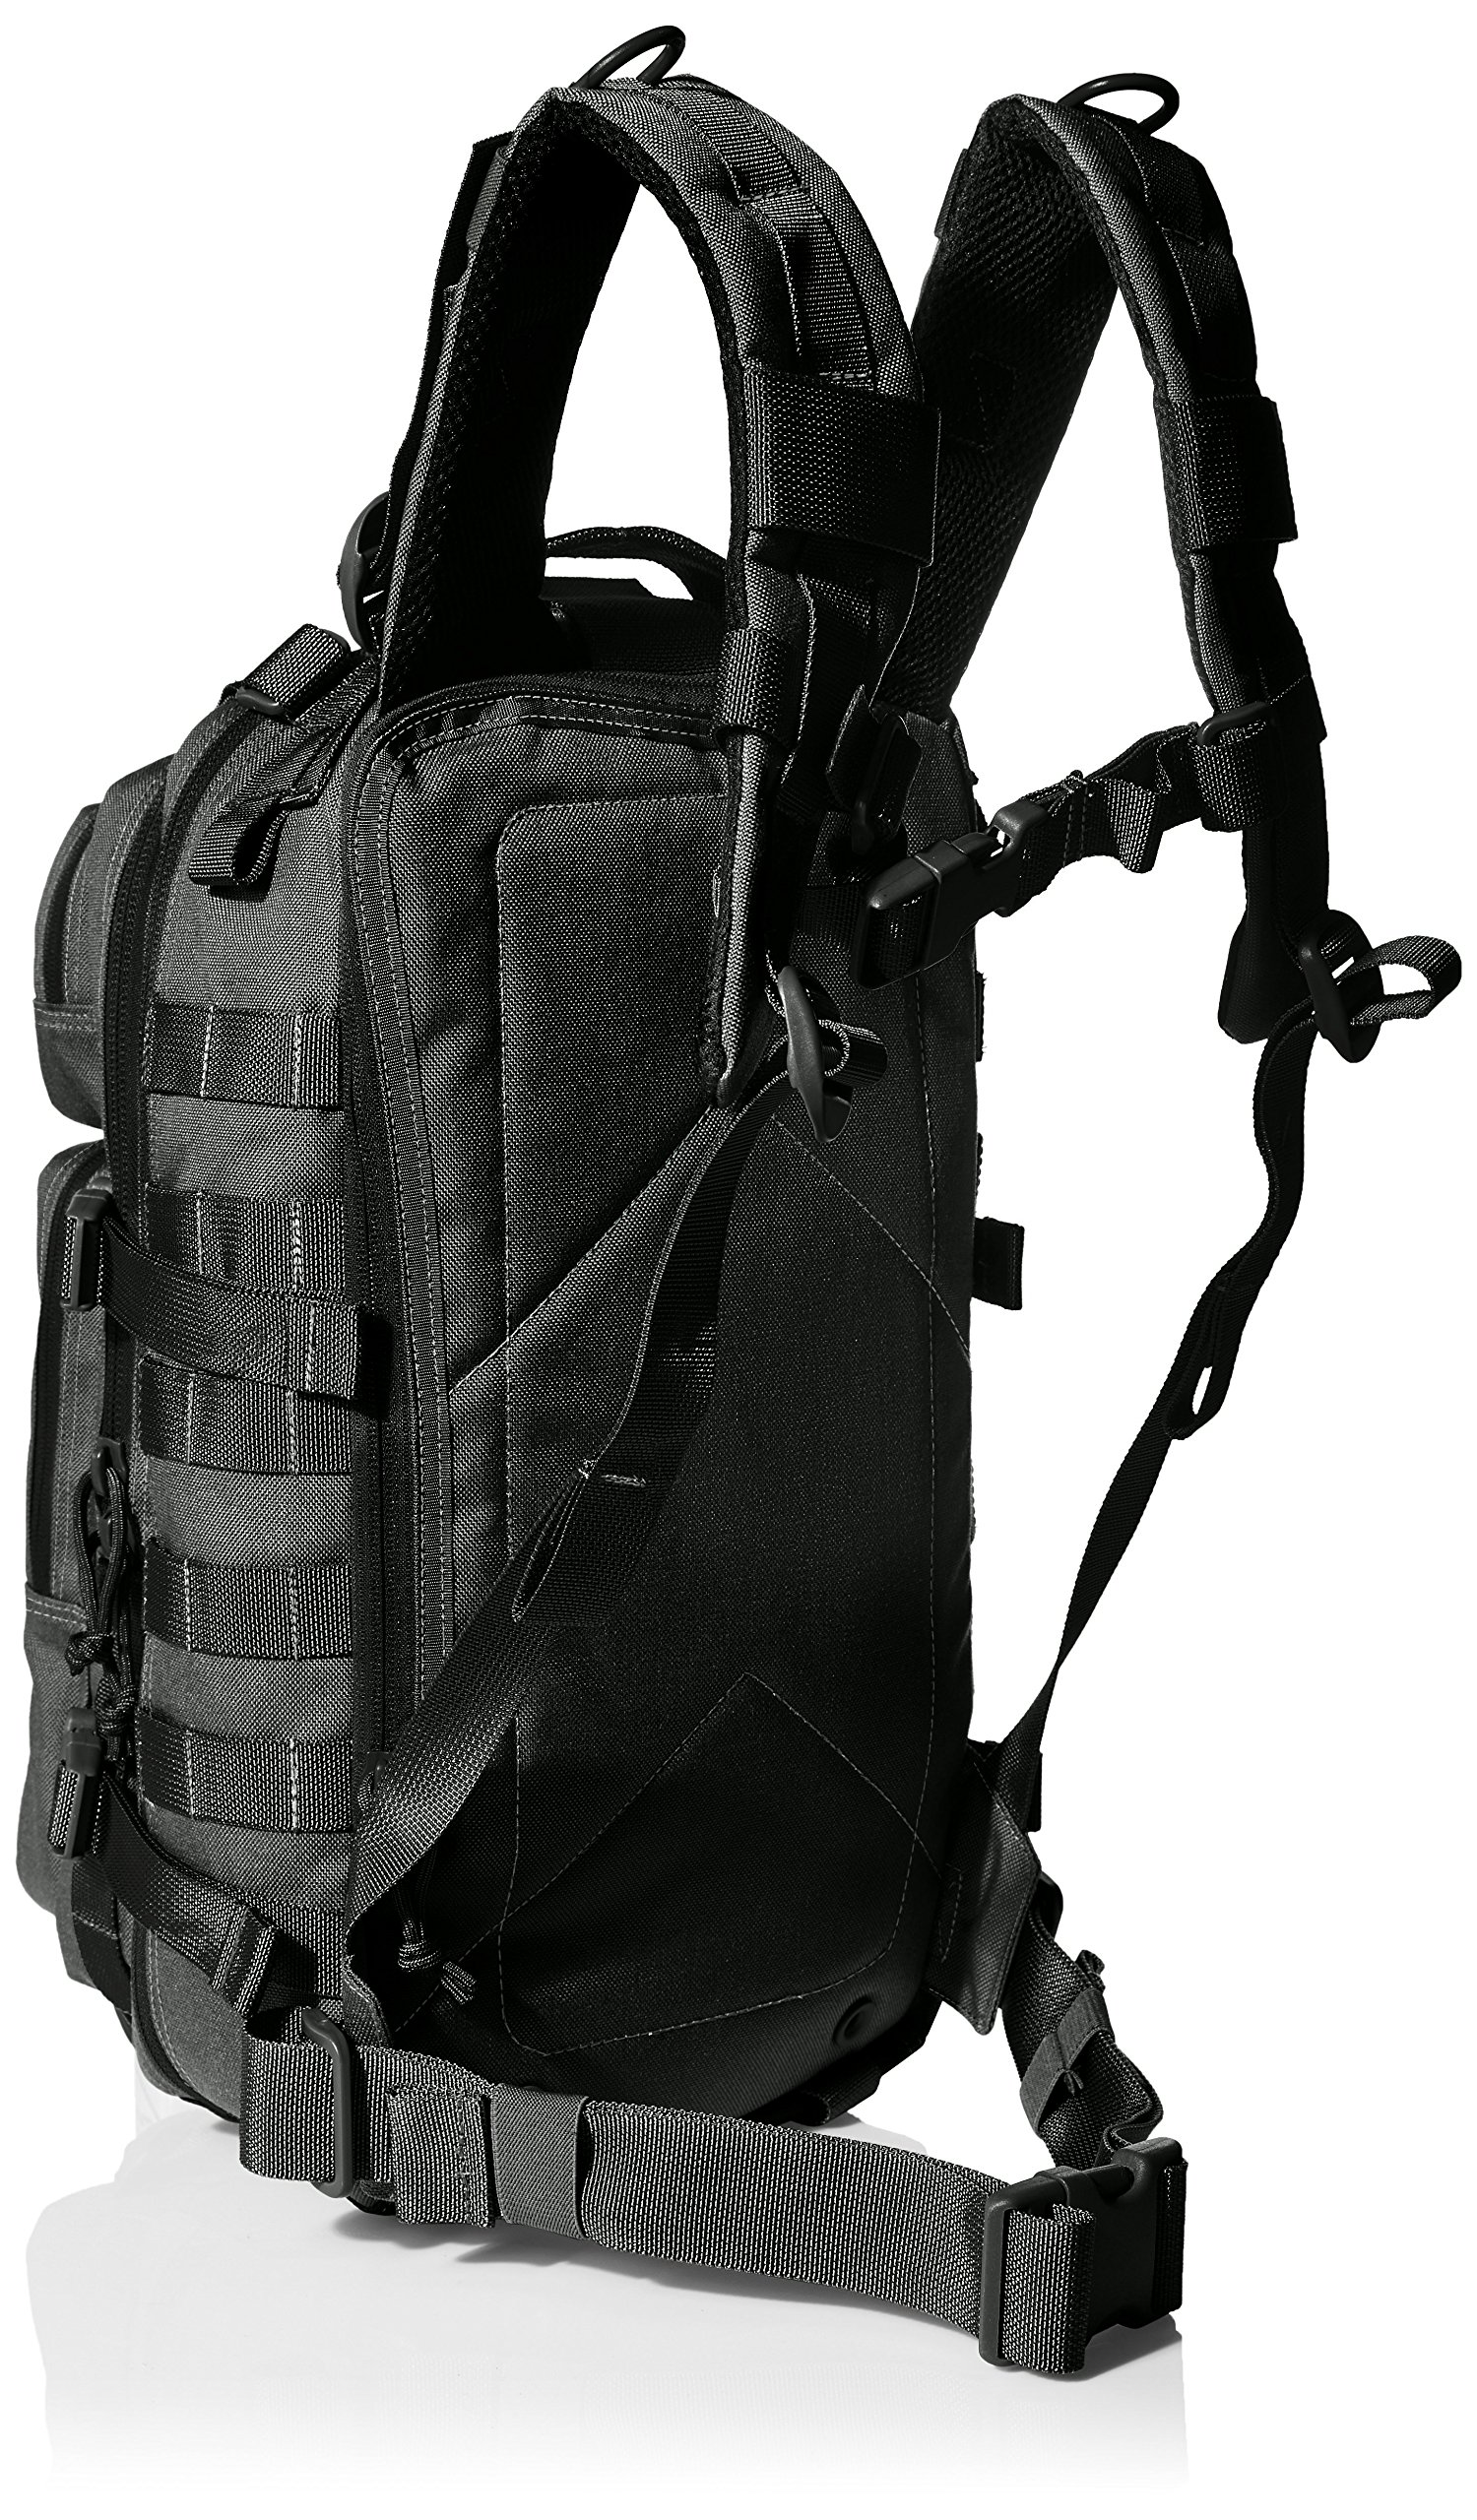 MX513W-BRK Falcon-II Backpack Wolf Gray by Maxpedition (Image #2)